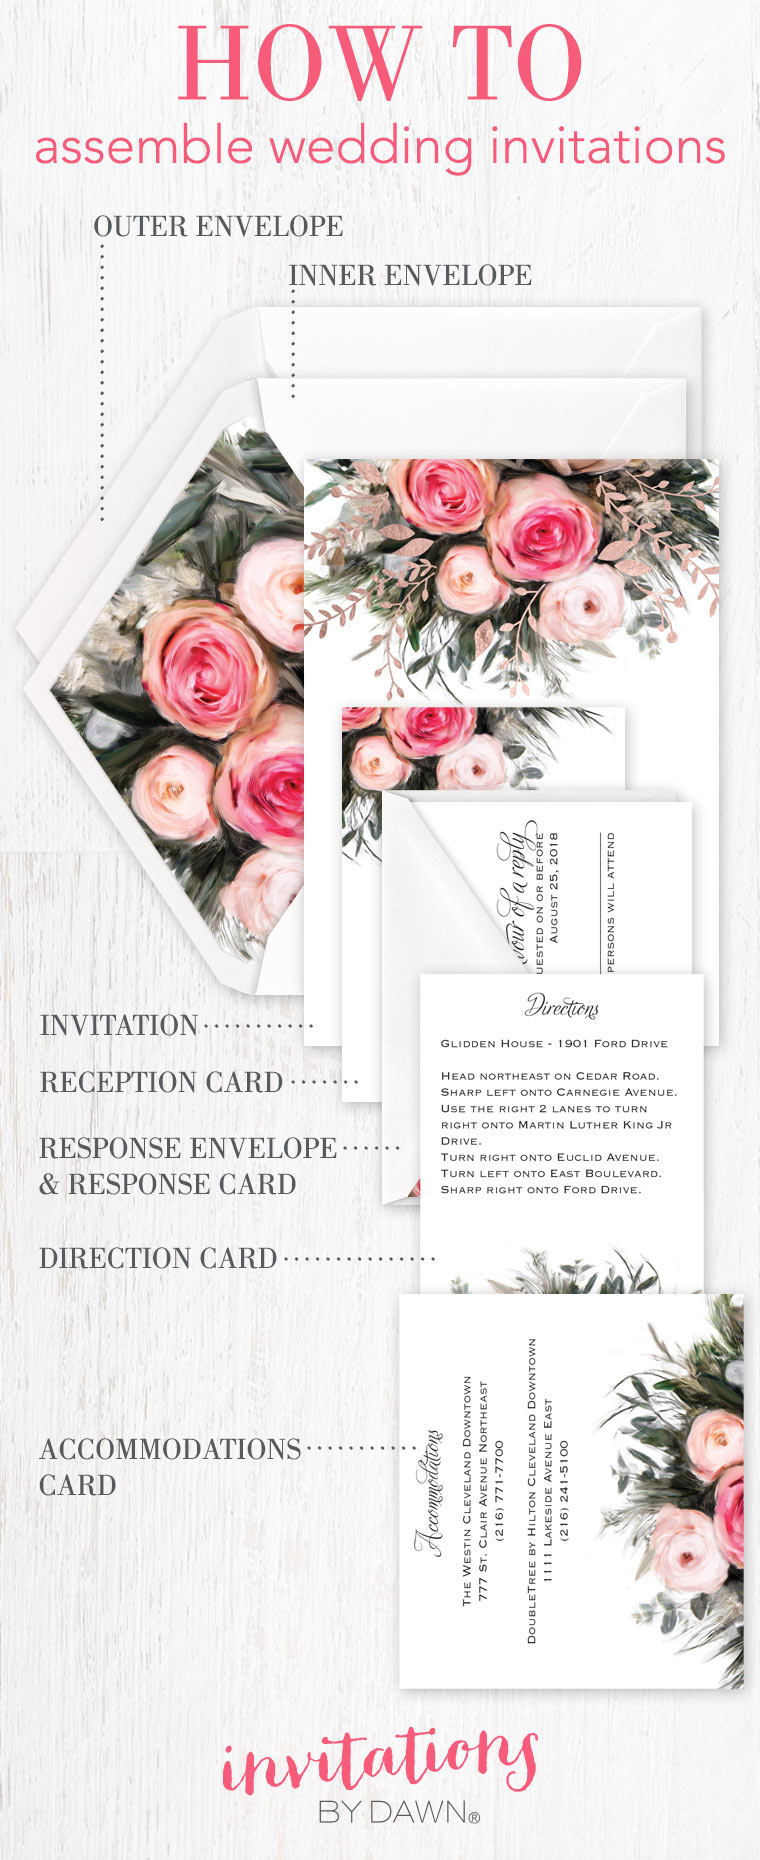 Assembling Wedding Invitations | Invitations By Dawn